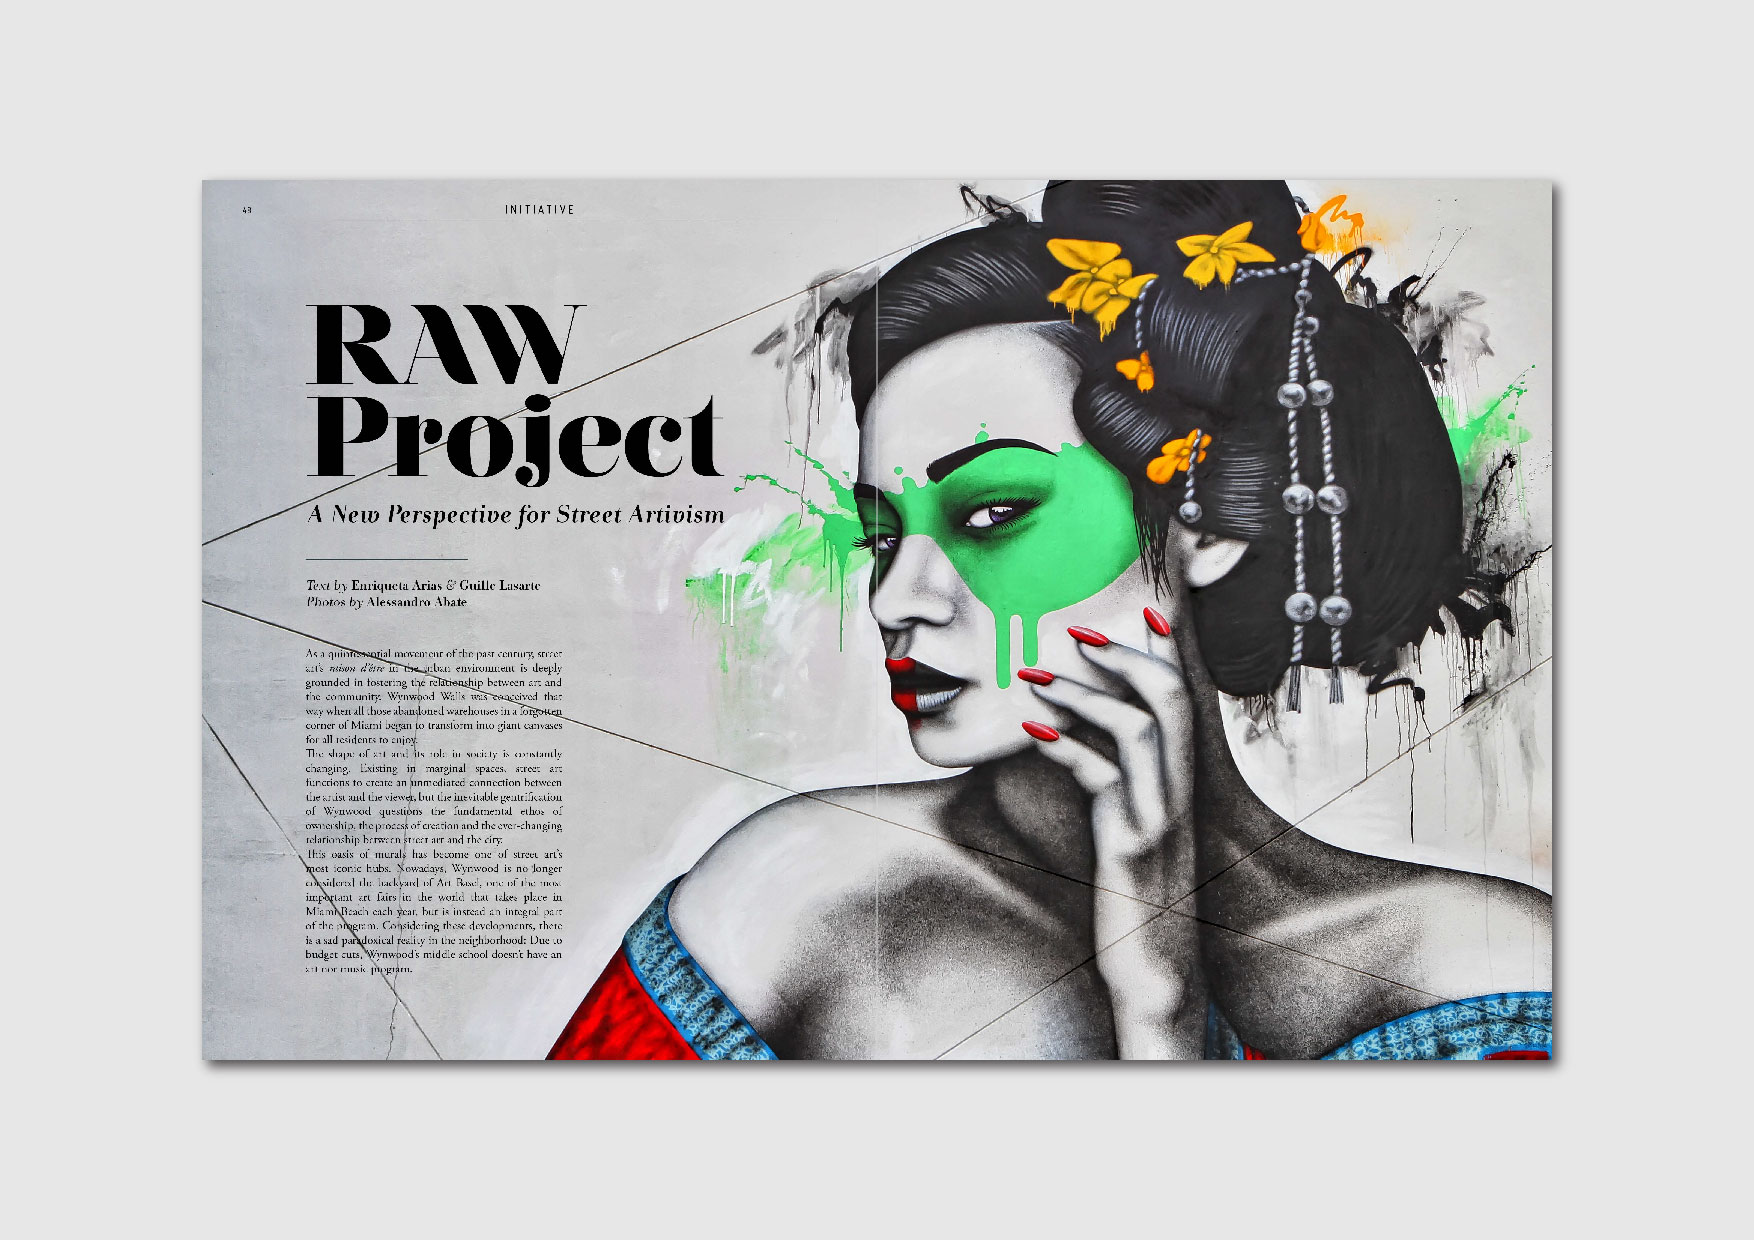 """T he RAW Project: getting to know the street artivism initiative """"Re-Imagining the Arts in Wynwood"""""""